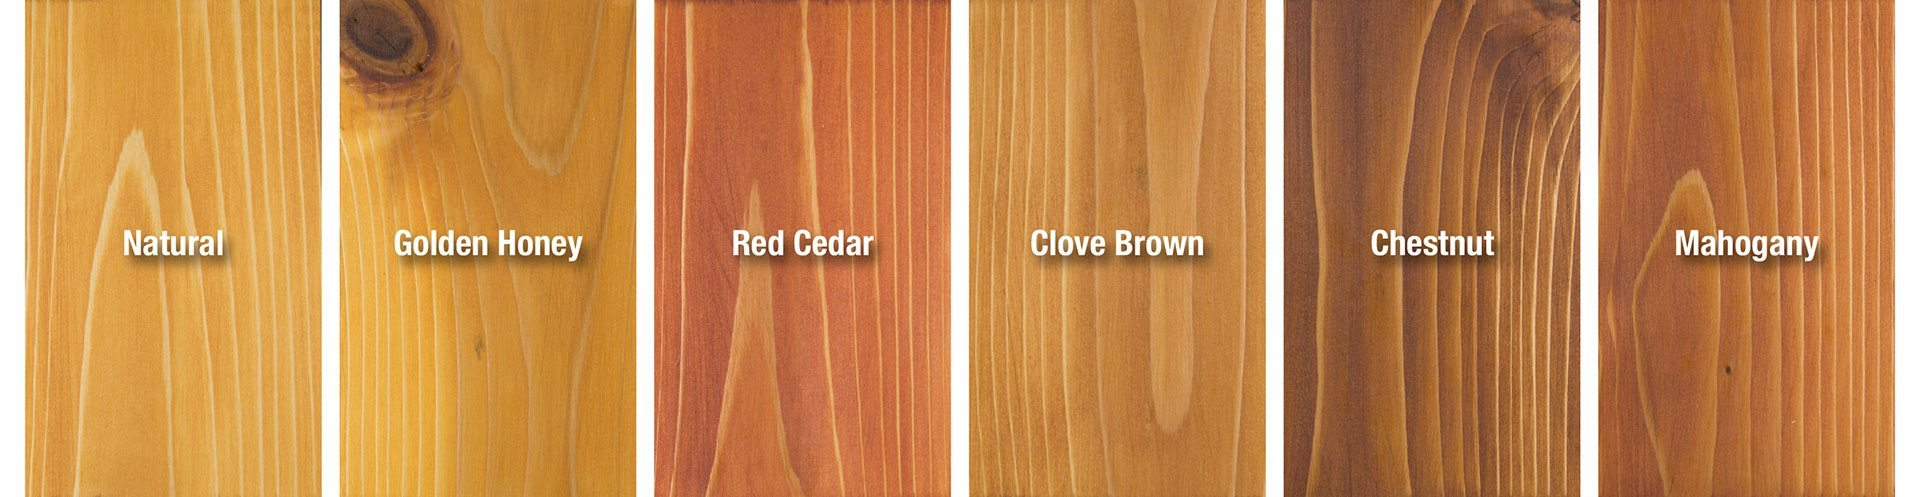 Smooth-Cedar-Boards